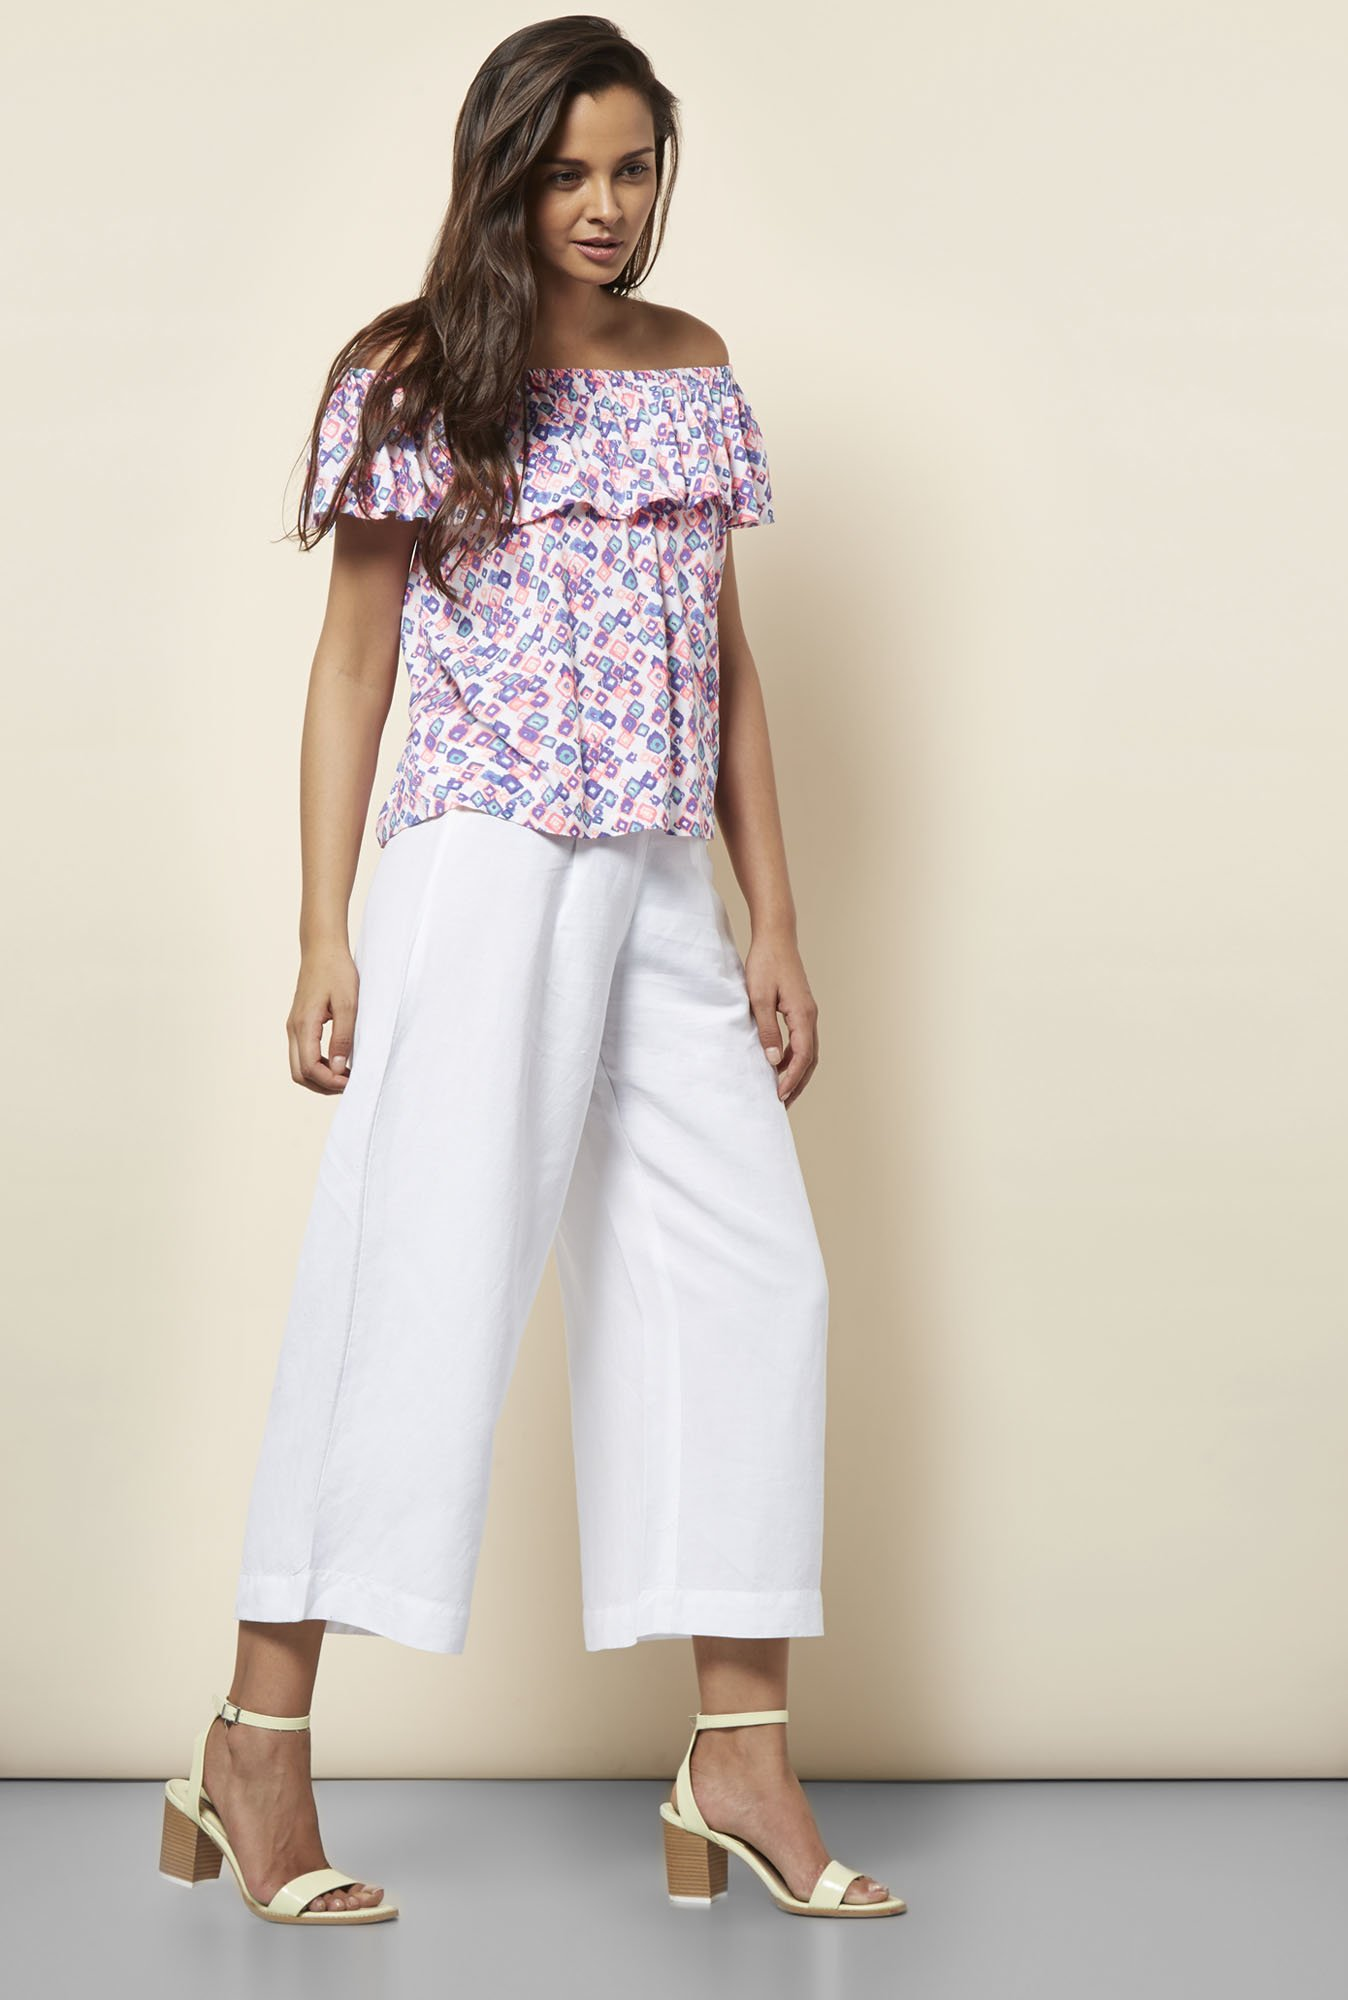 Cottonworld Printed Multicolor Blouse